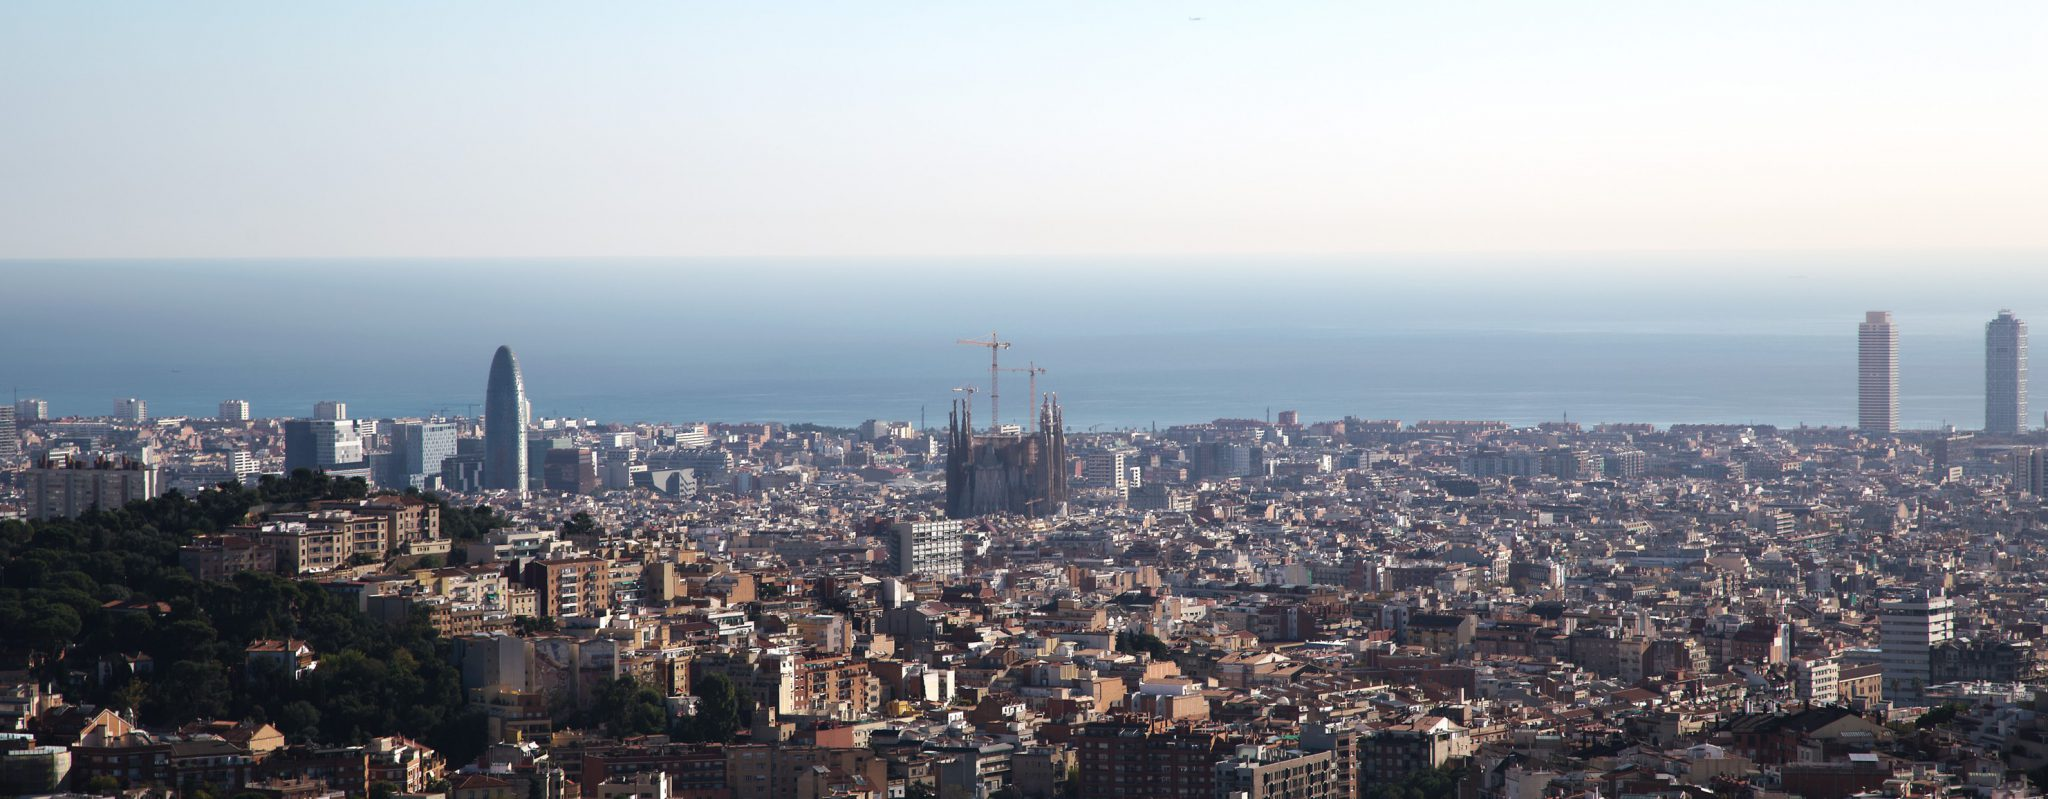 10 Things You Probably Didn't Know About Barcelona